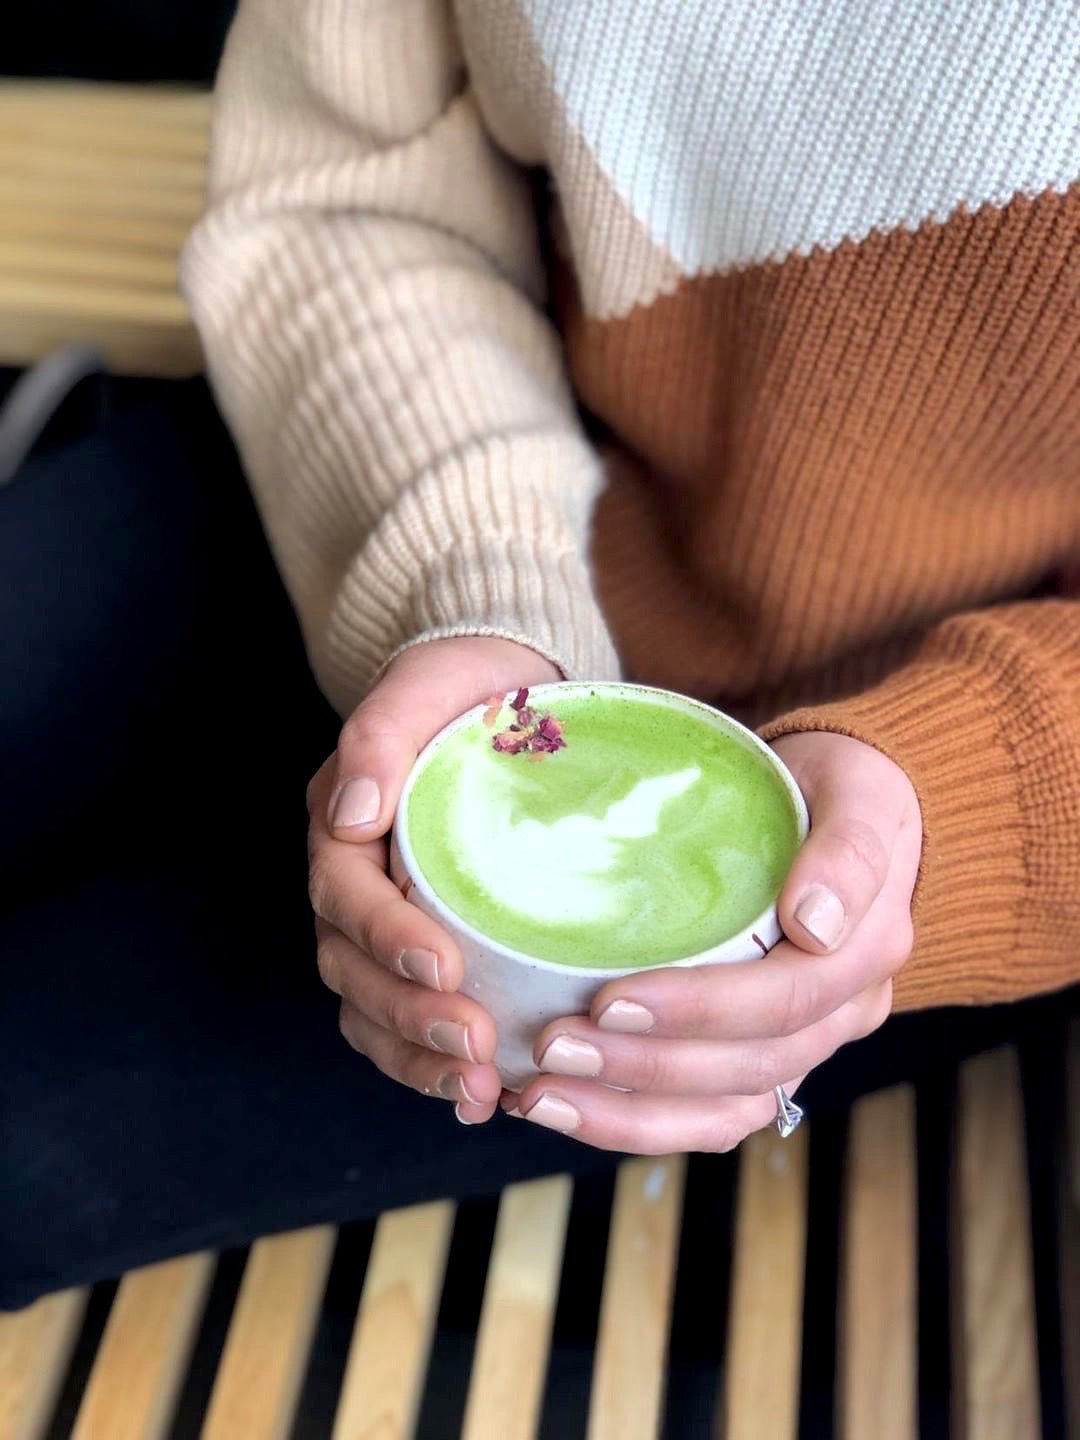 Hands holding a cup of matcha